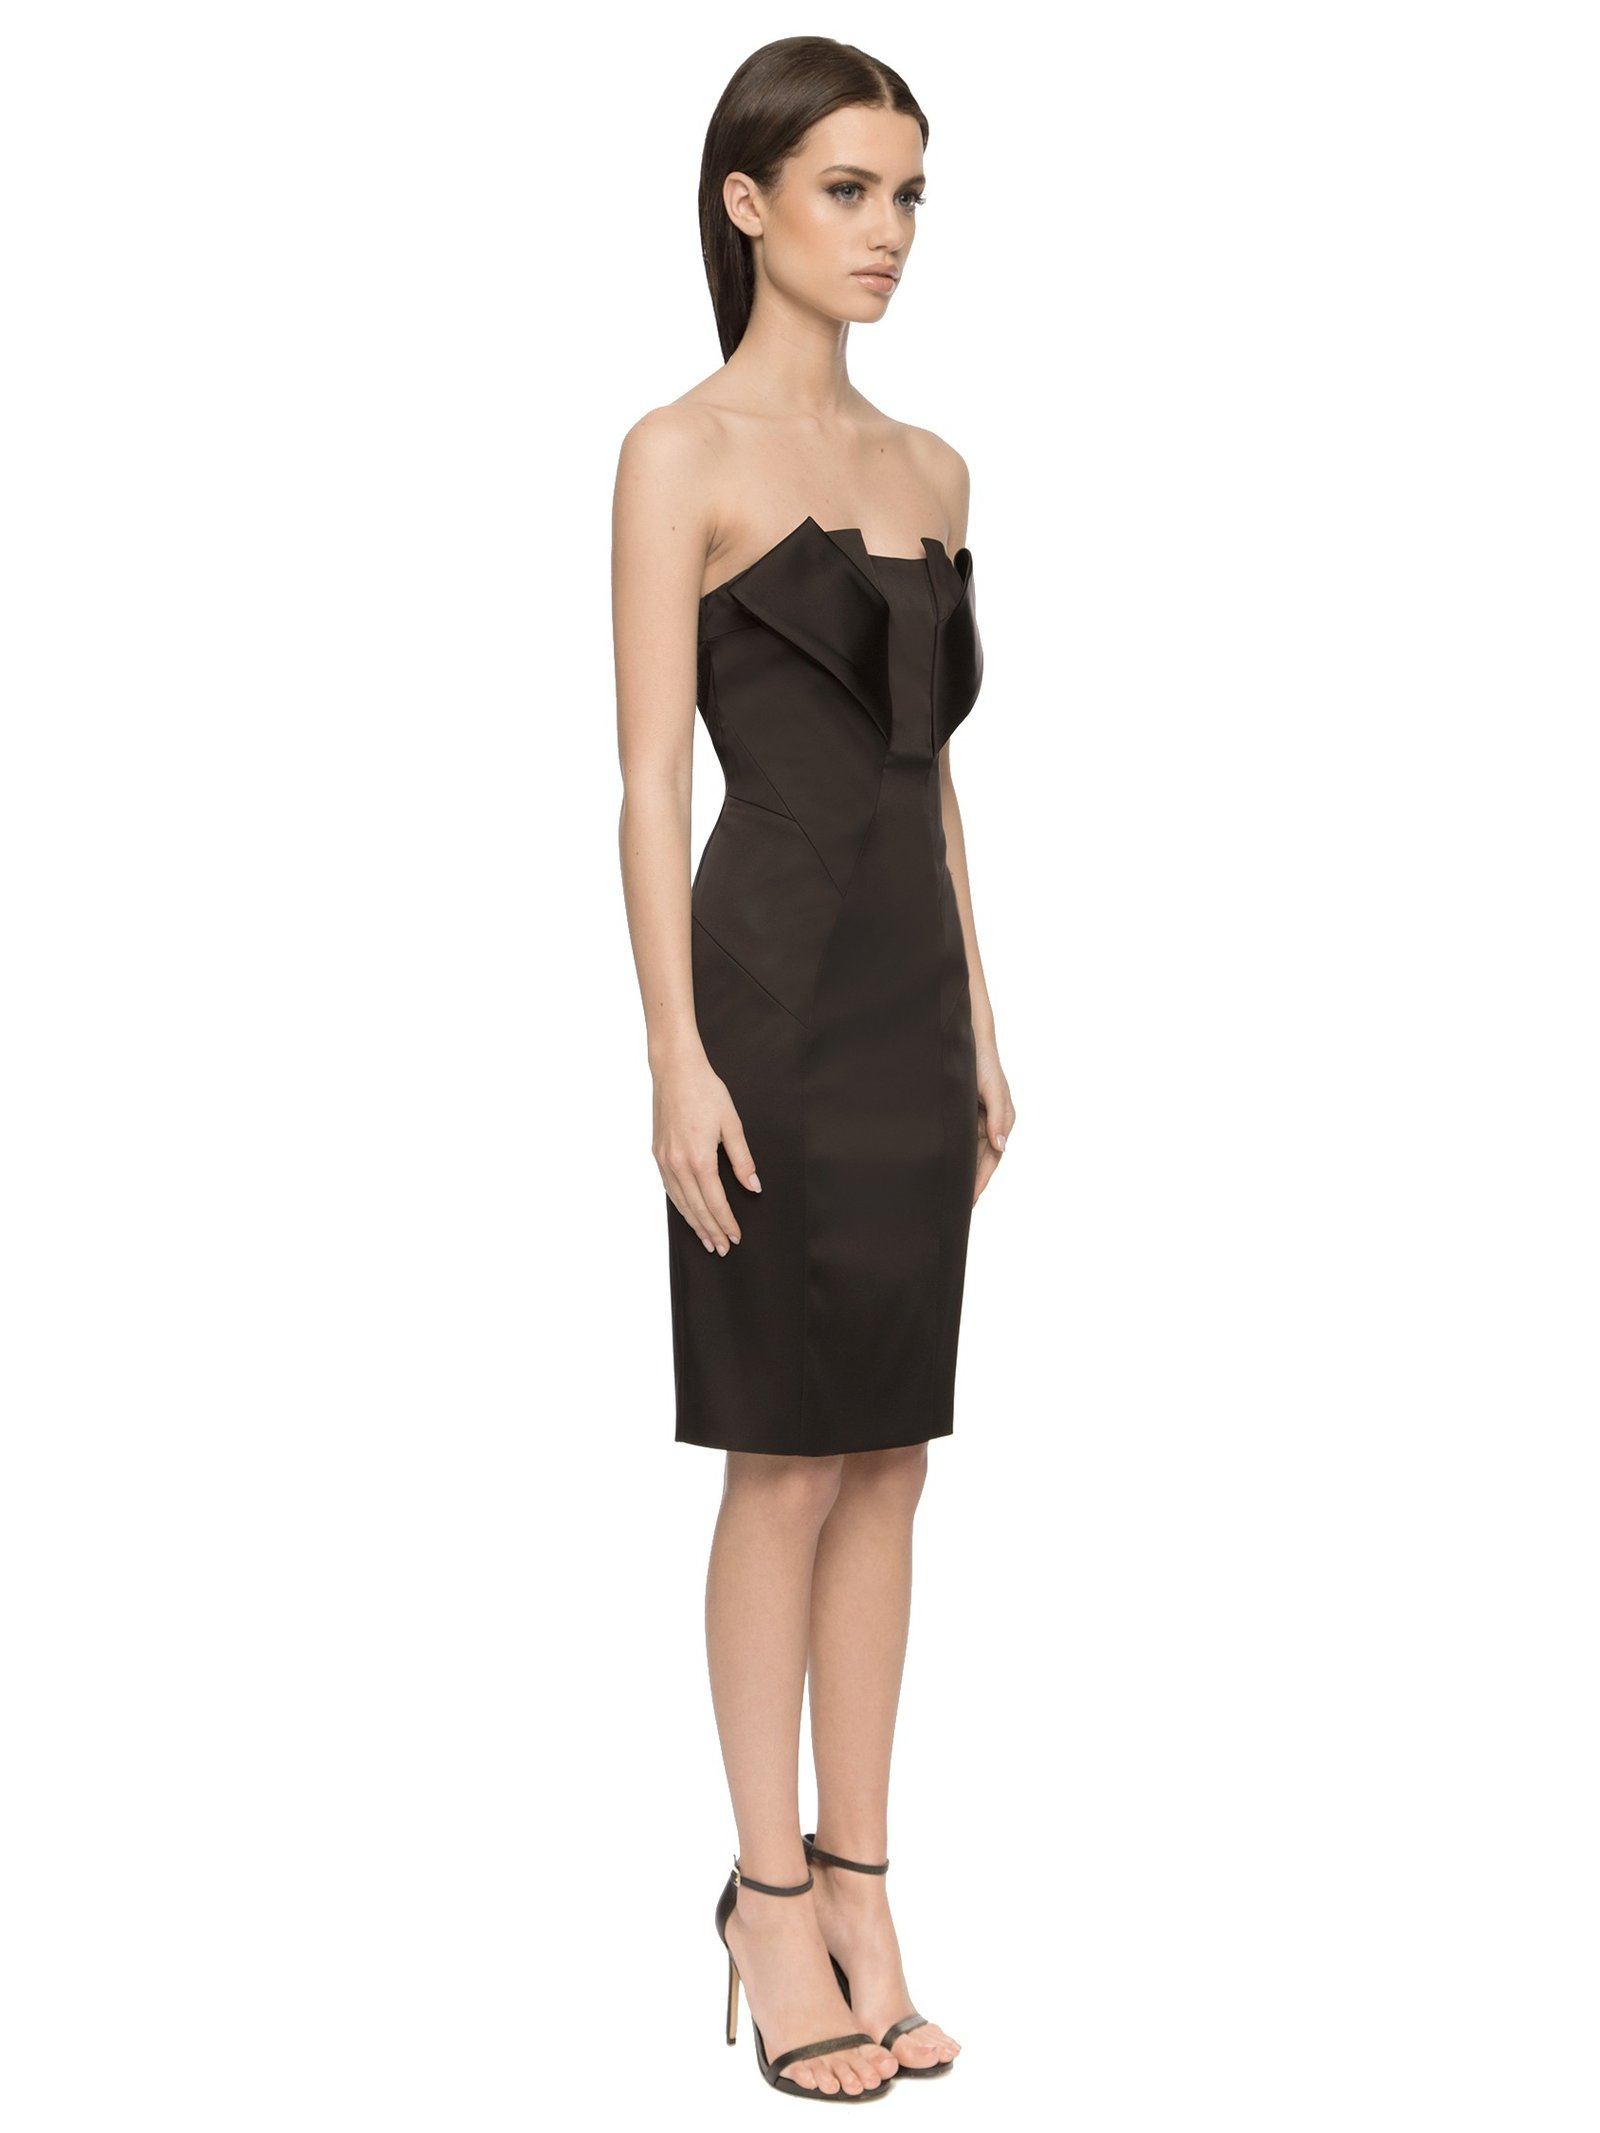 Aloura London Angel Dress Black